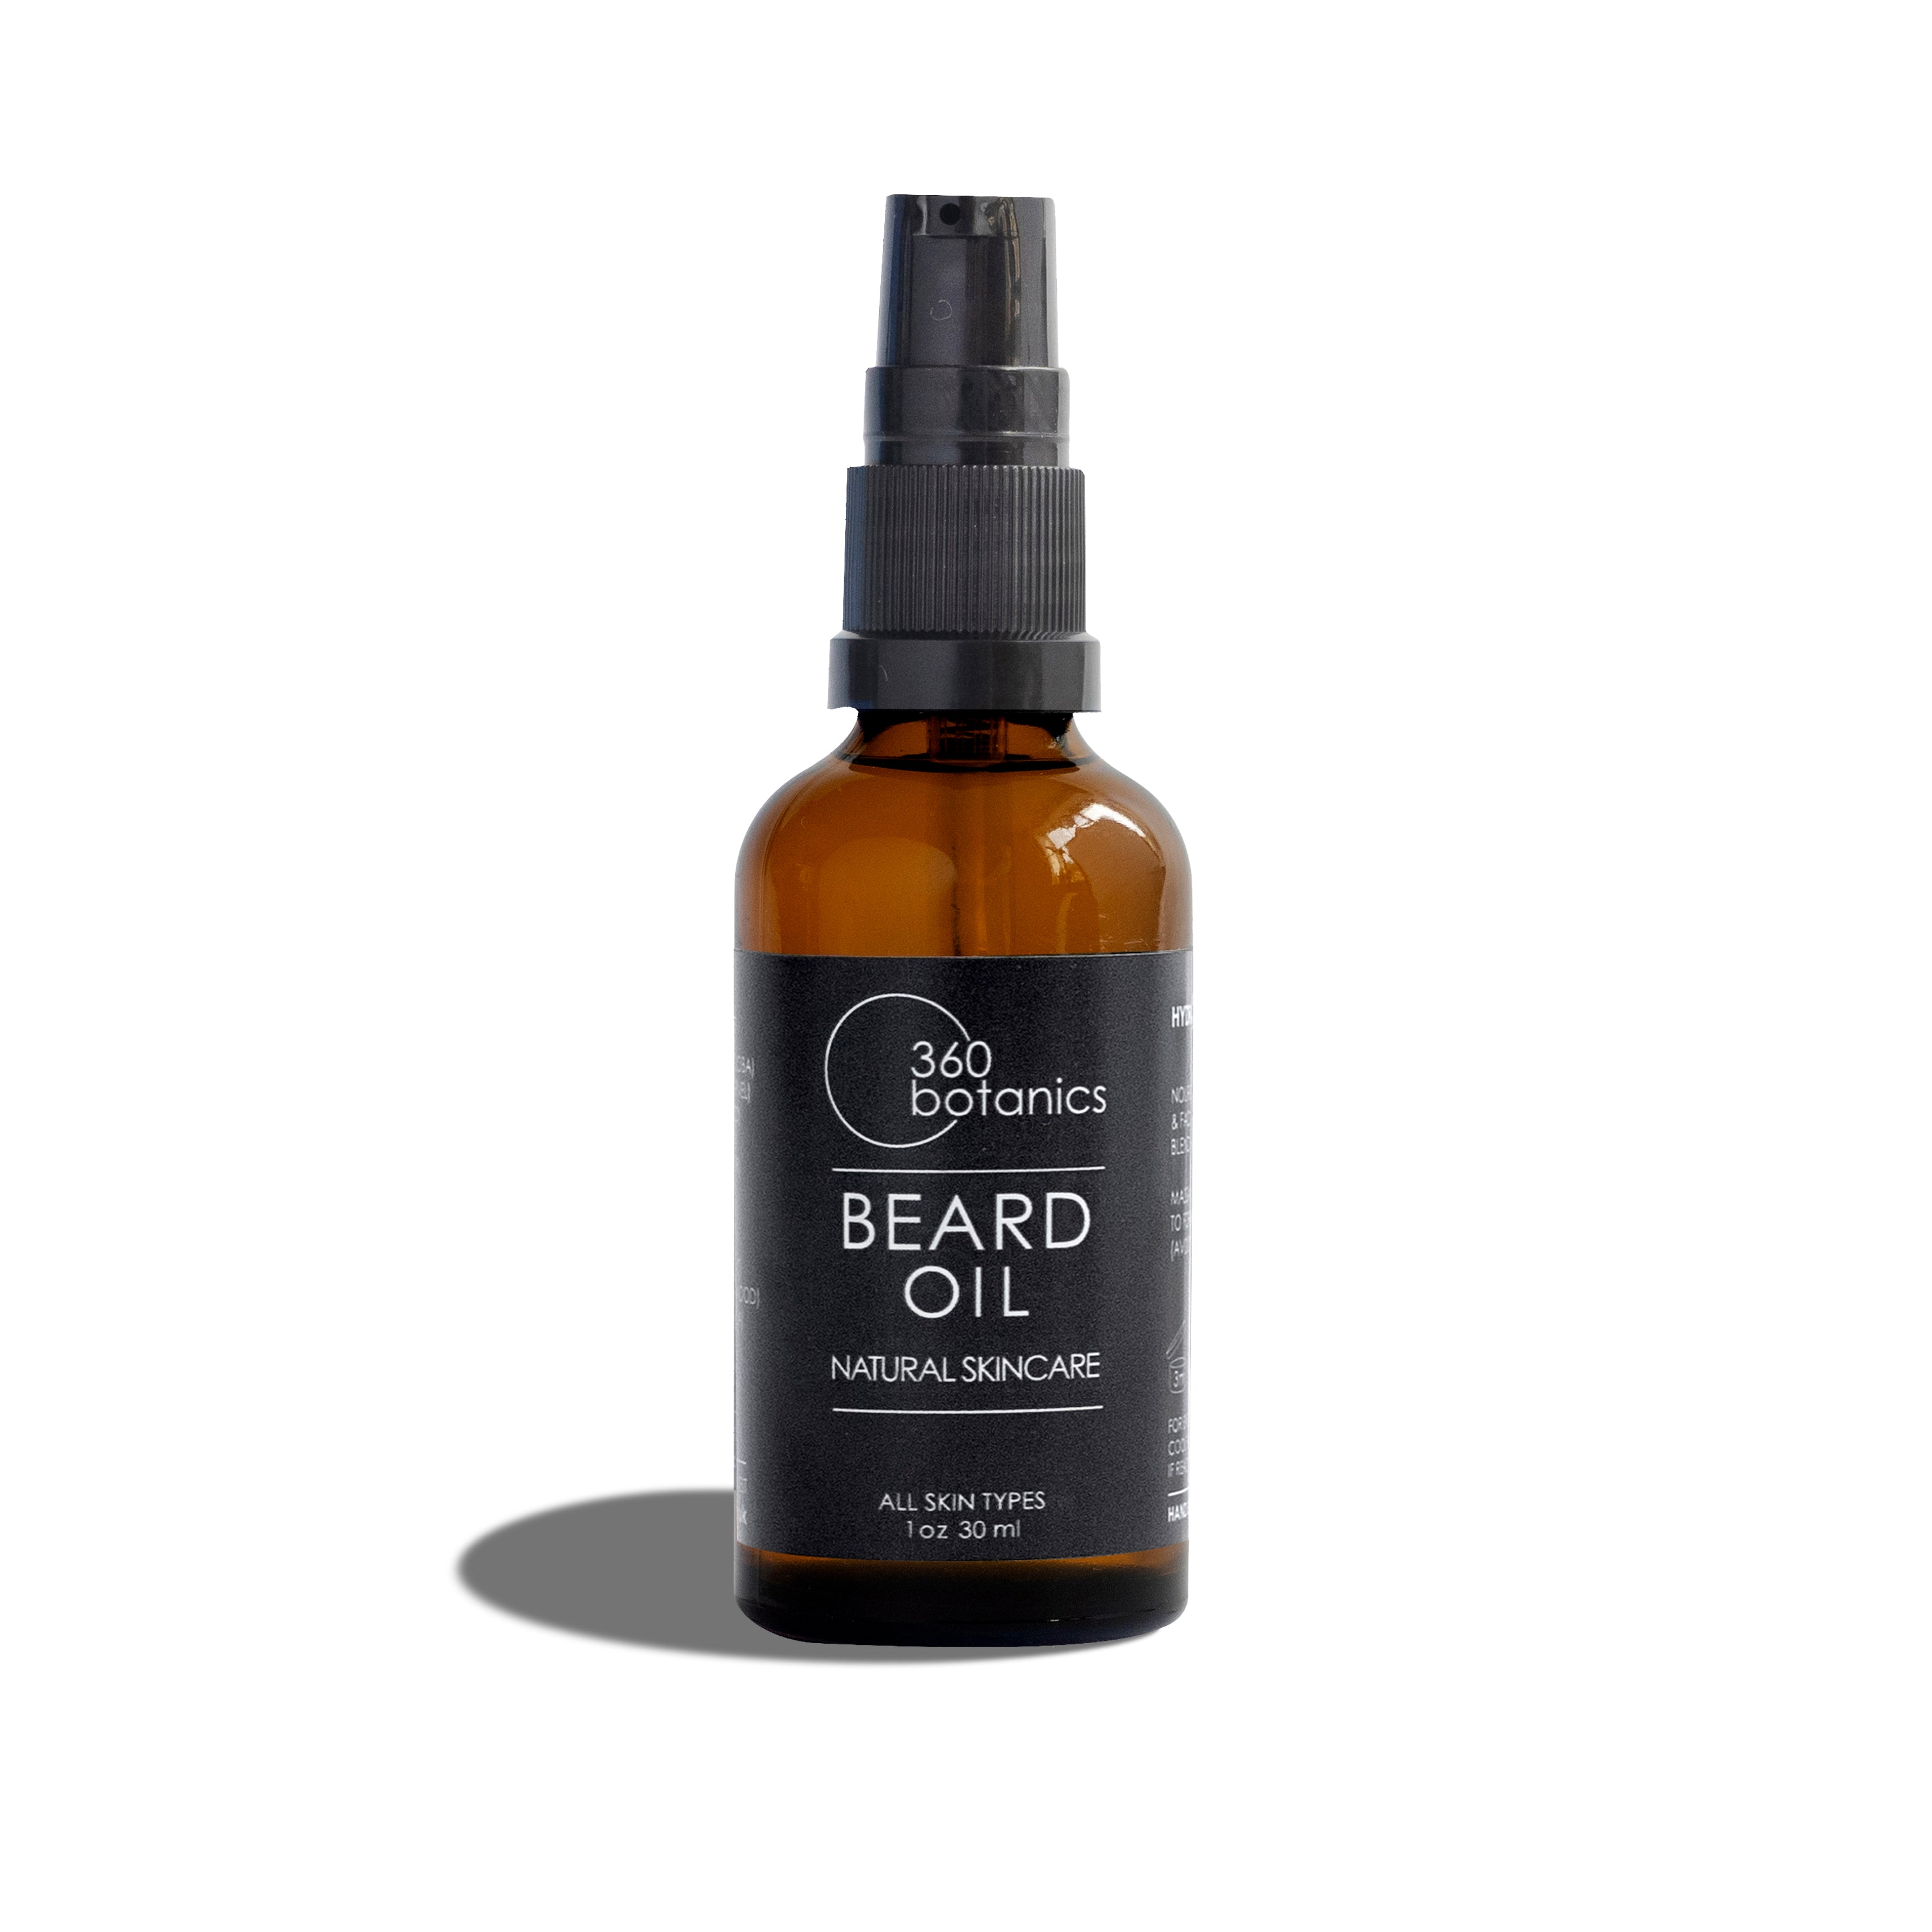 Image of 360 botanics Beard oil bottle photographed on white background